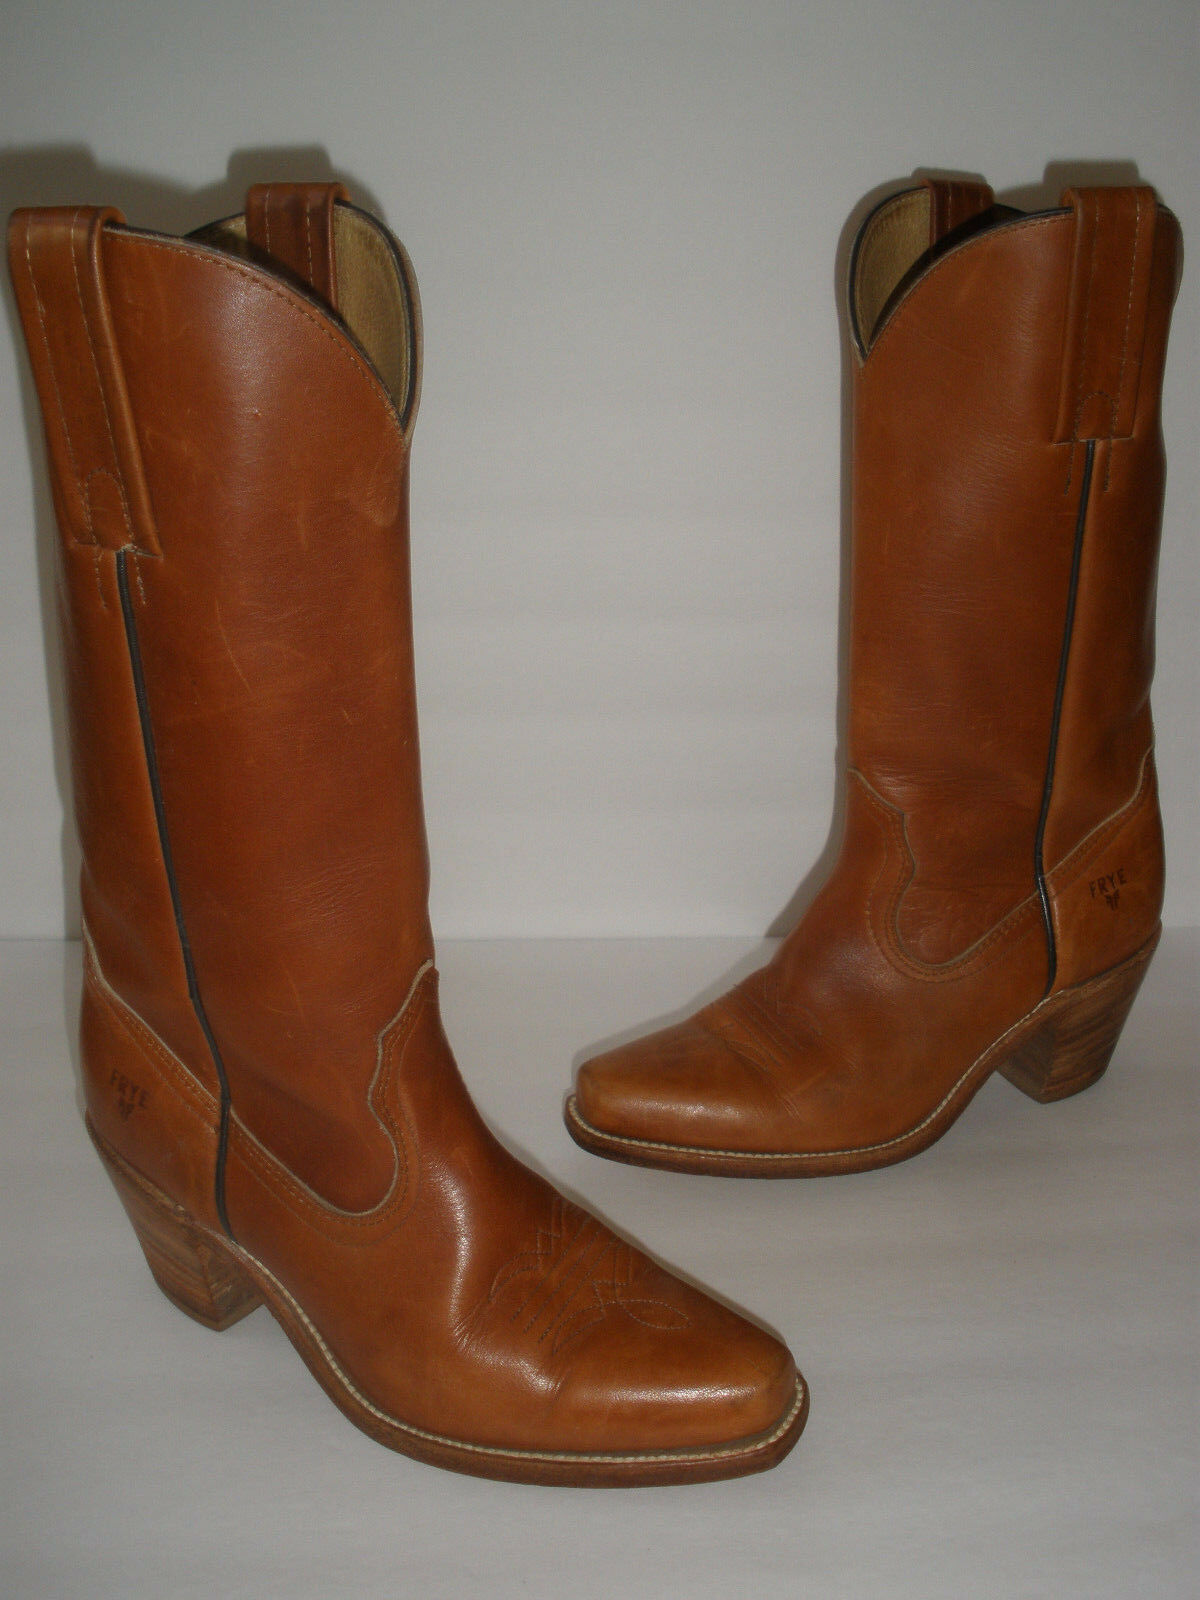 FRYE COWGIRL LEATHER BOOTS SIZE US 5.5 HOT VINTAGE  MADE IN USA